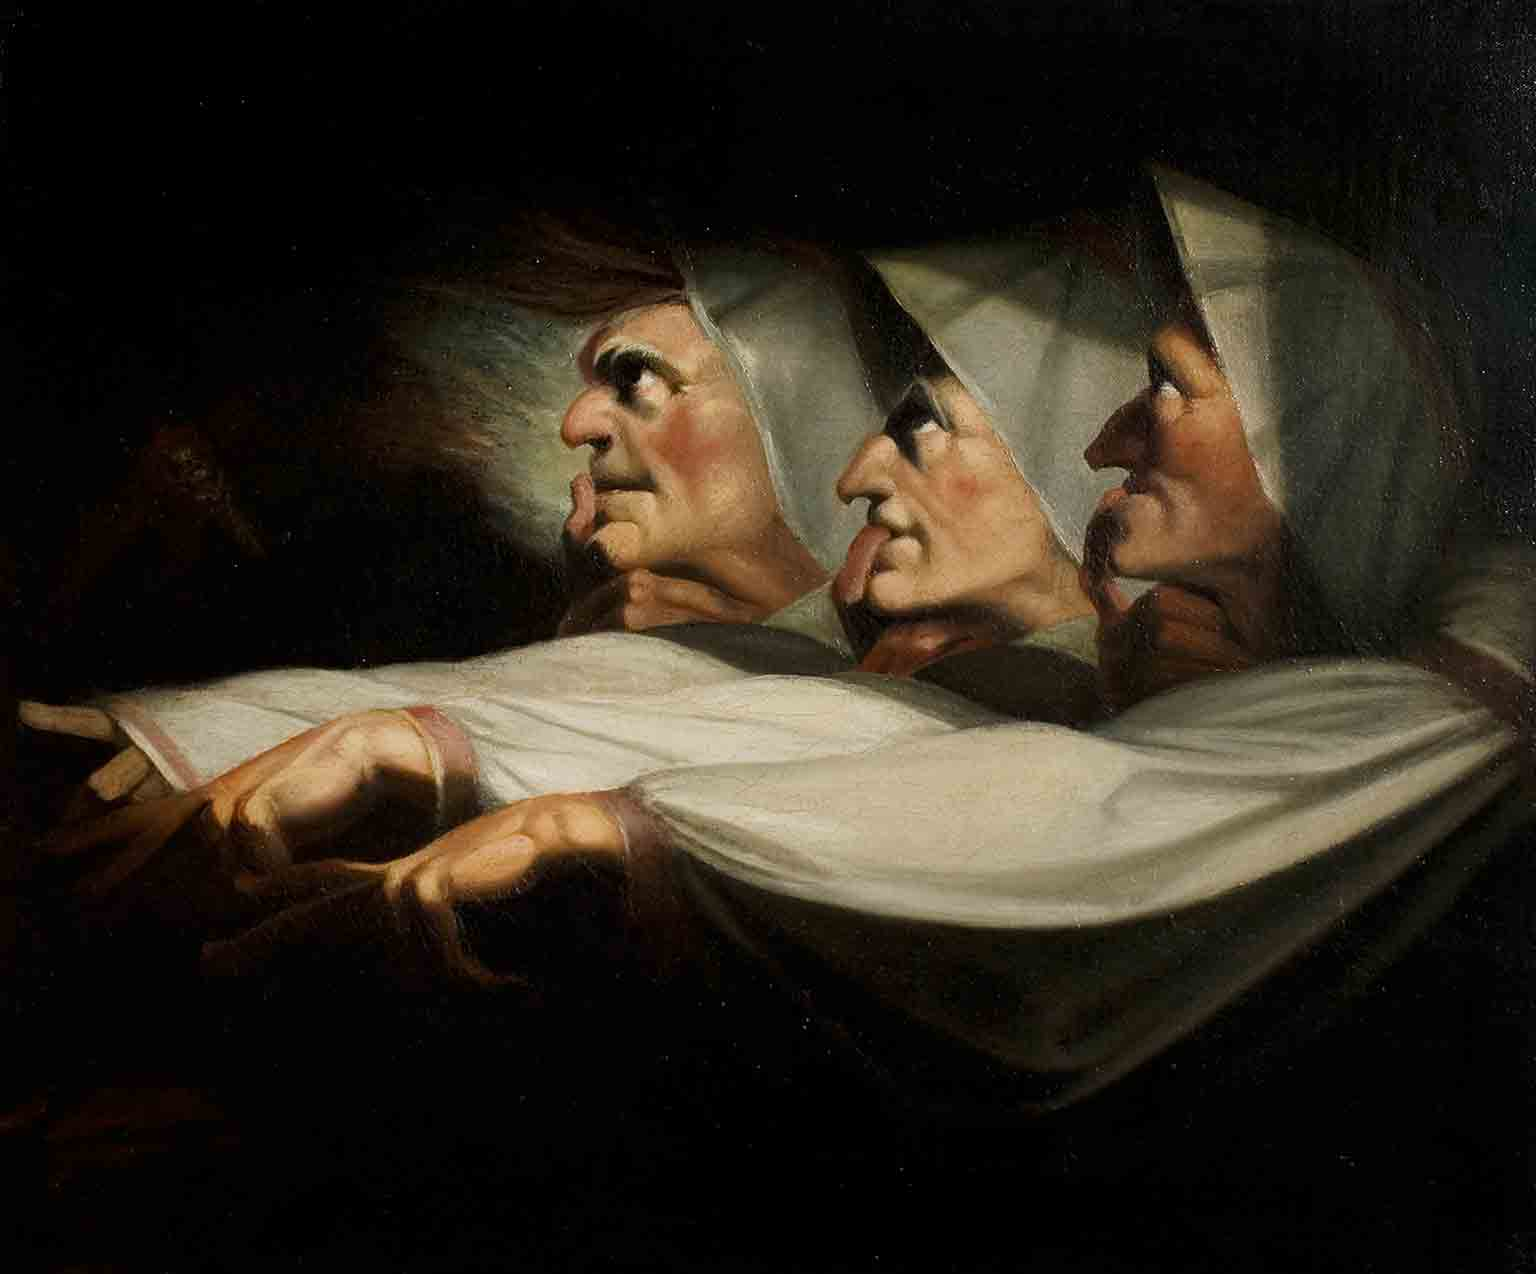 Shakespeare in Art: Tempests, Tyrants and Tragedy, Compton Verney, 19 March – 19 June - Henry Fuseli, Macbeth, Act I, Scene 3, the Weird Sisters © Royal Shakespeare Company Collection